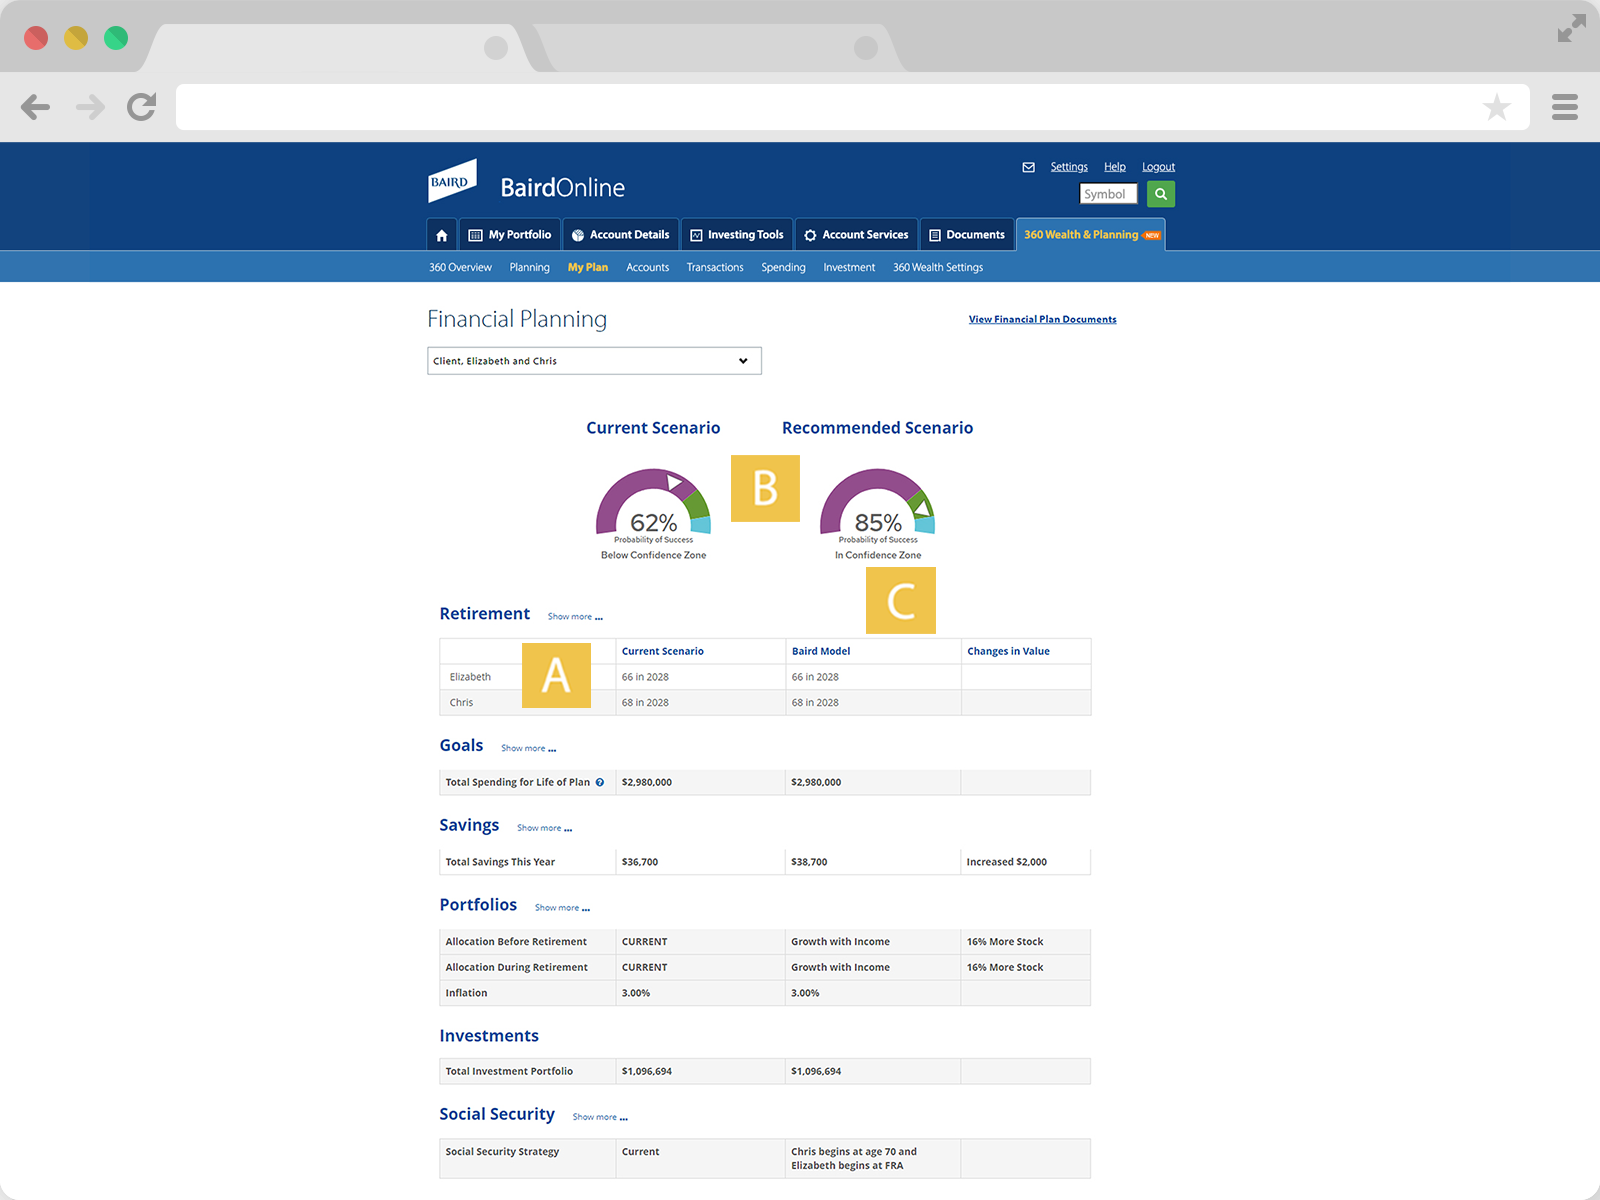 Screenshot of Compare to Current page.